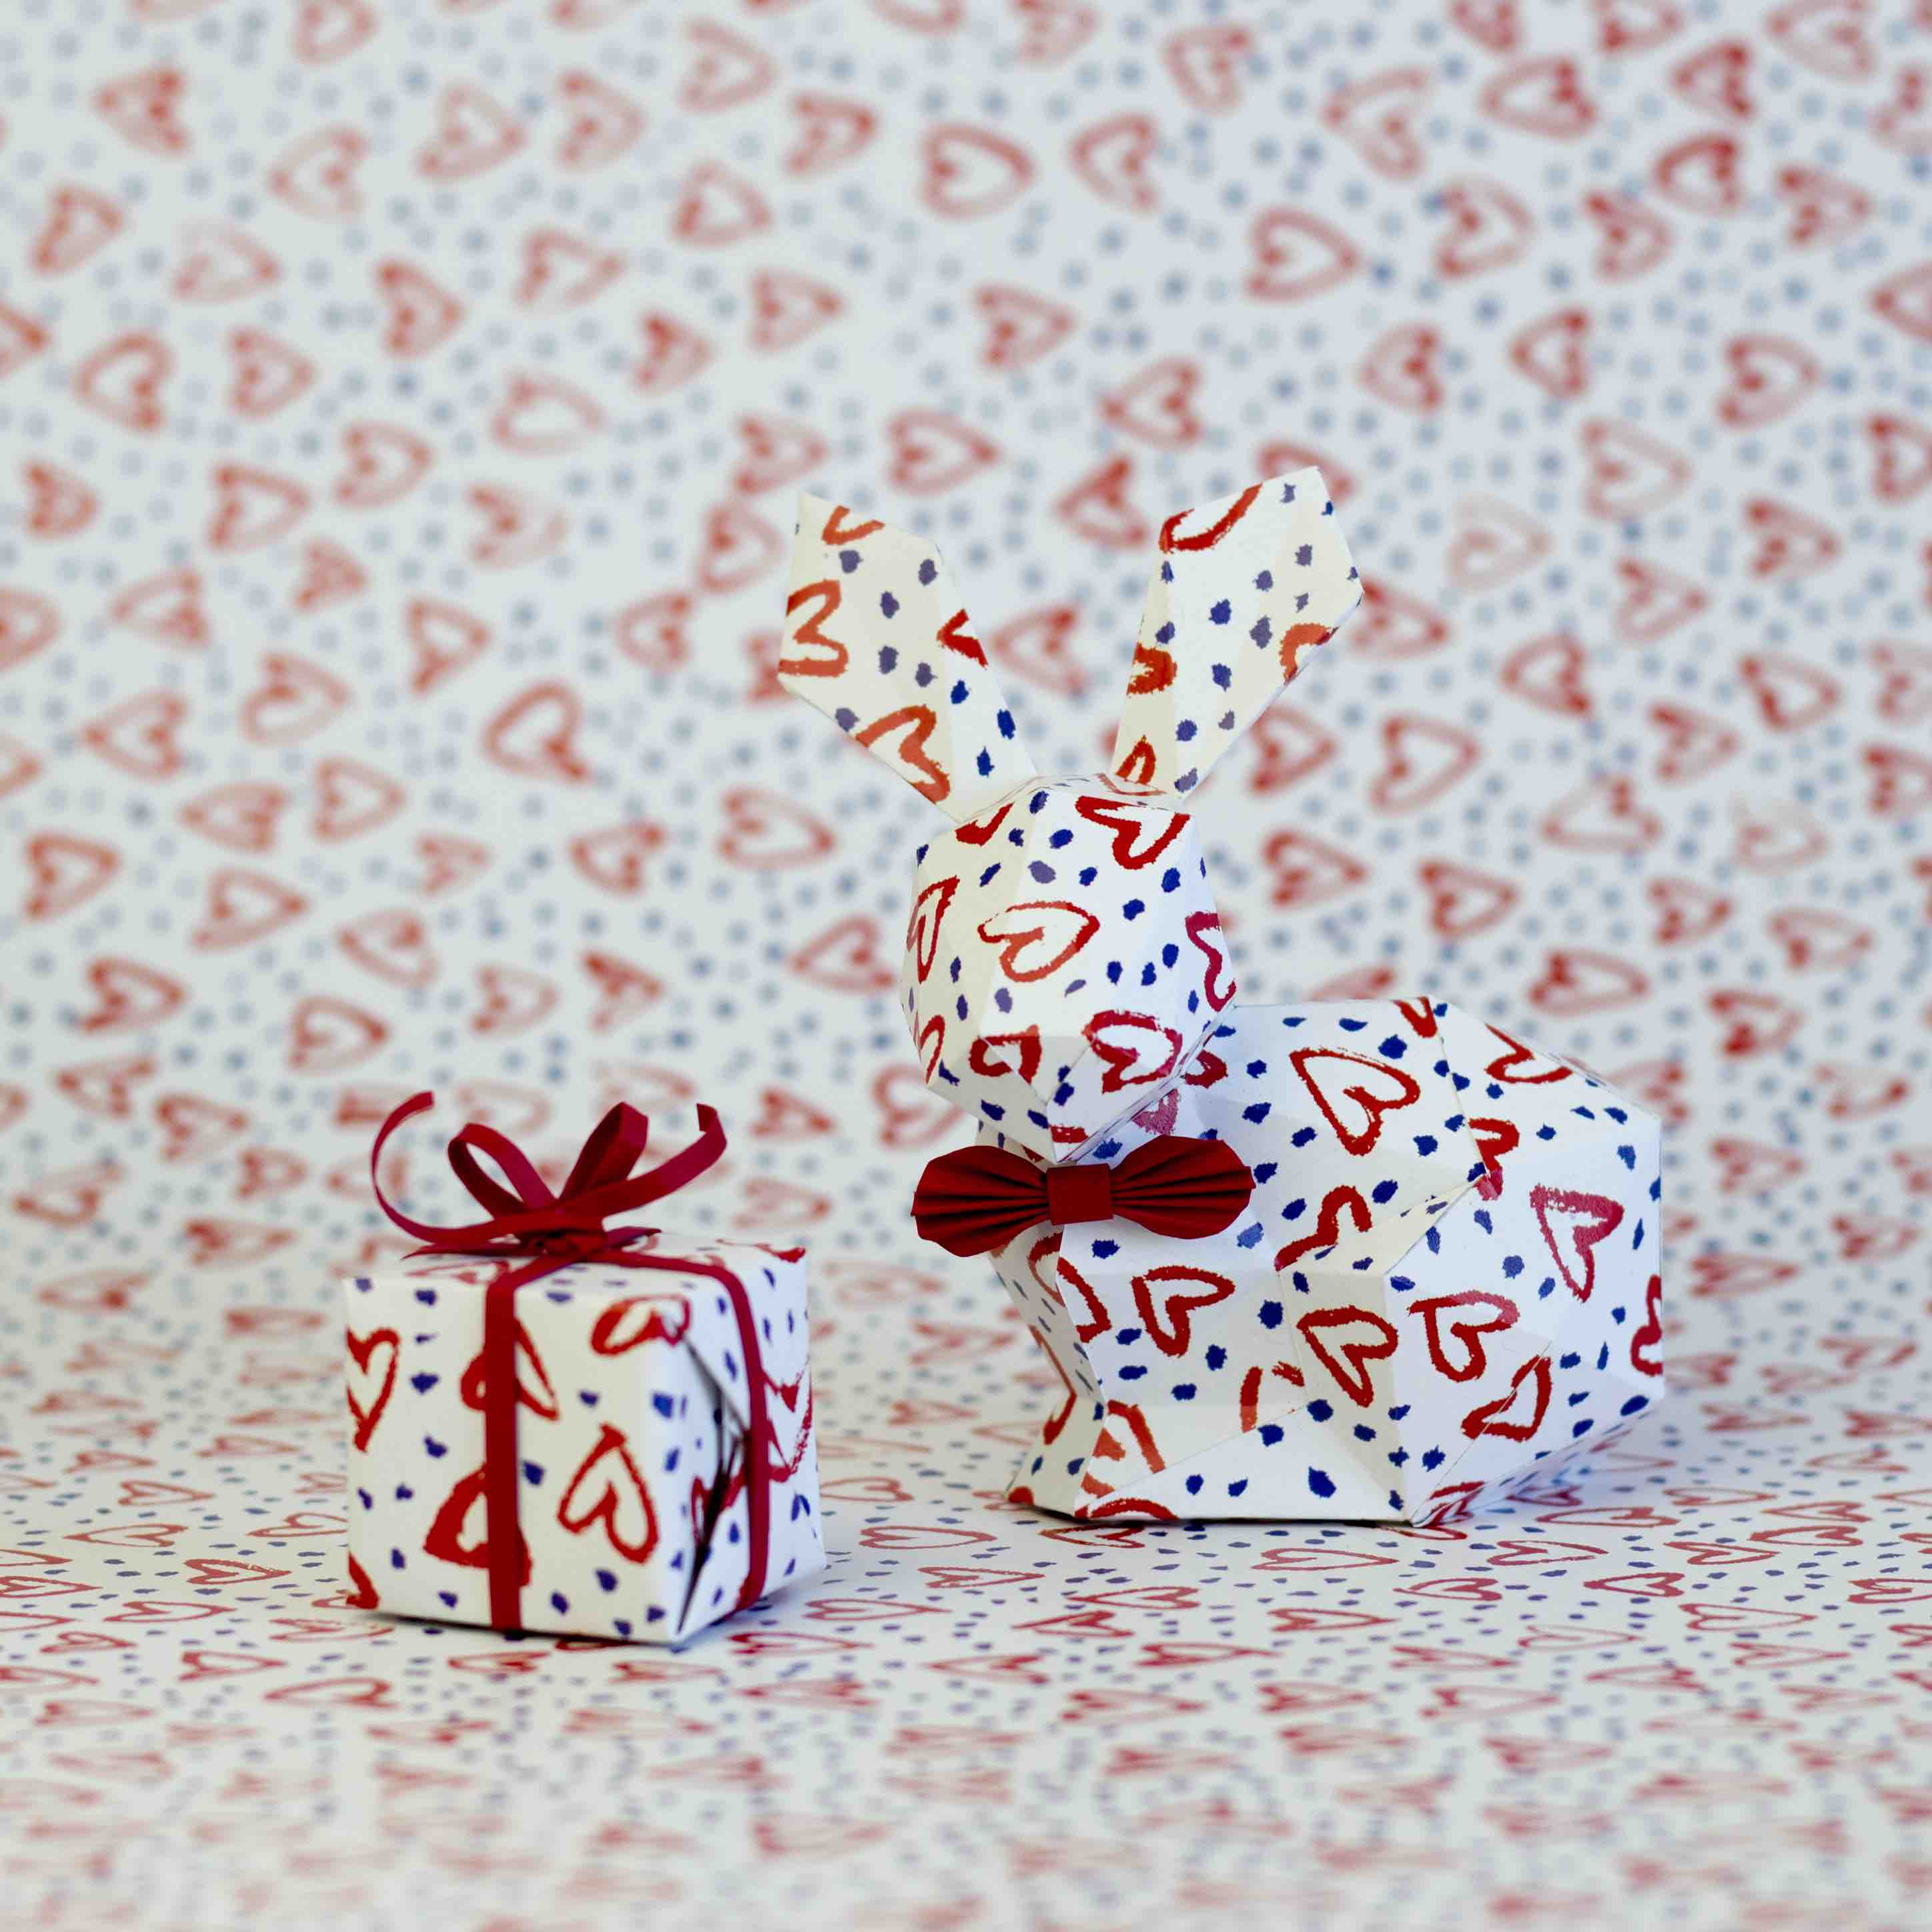 Interview IMPRESSION ORIGINALE Surgeon Paper Déluge de coeur lapin cadeau